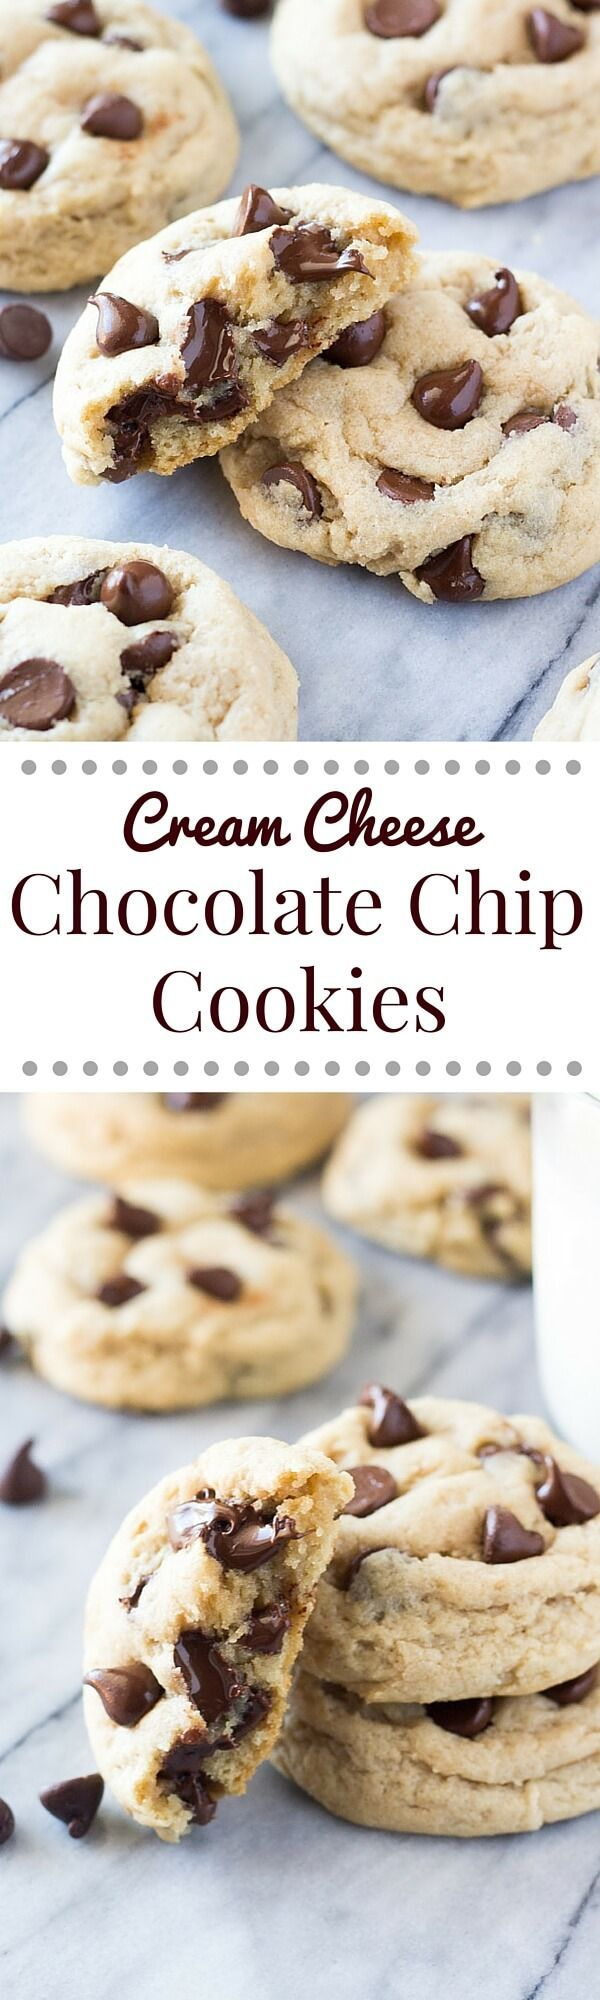 Are you ready for the softest, thickest, chewiest, most delicious cookie? These cream cheese chocolate chip cookies are just THAT amazing #chocolatechipcookies #cookies #recipes